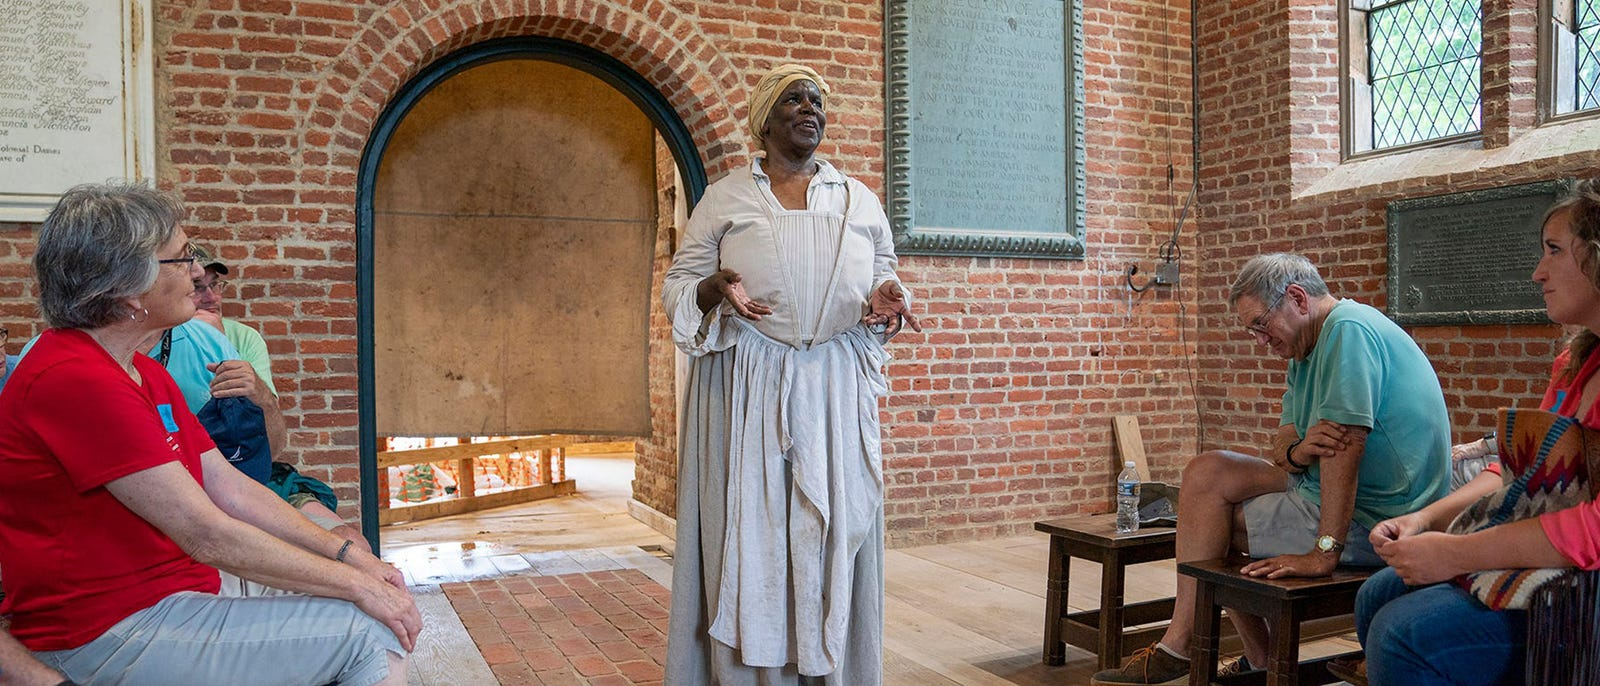 She was captured, enslaved and she survived. Meet Angela, the first named African woman in Jamestown